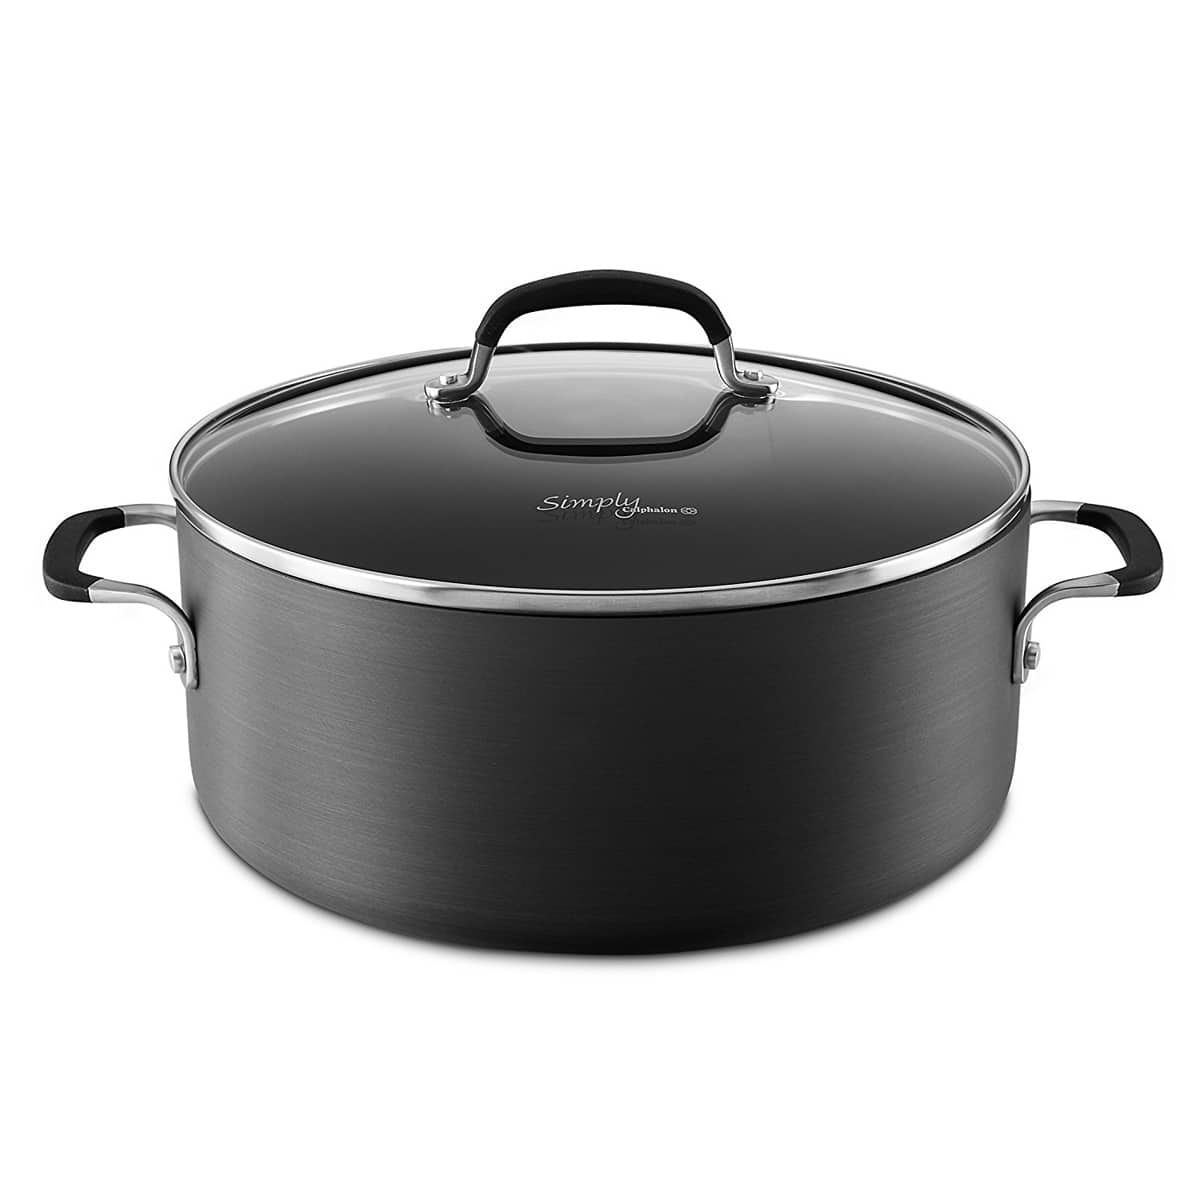 7 Quality Dutch Ovens for $50 or Less: gallery image 4